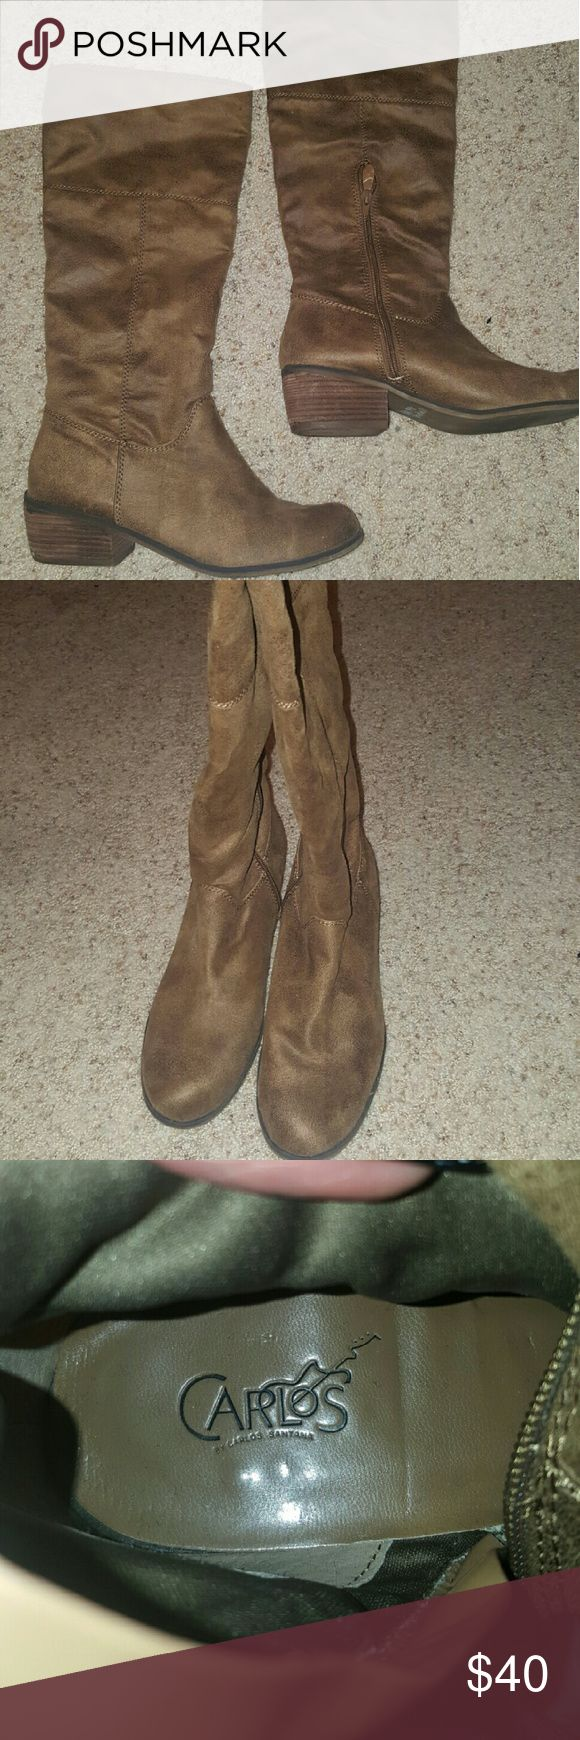 """Tan/Taupe boots These are Carlos by Carlos Santana boots """"Augusta"""" size 9, no scuffs or tares. Great condition! And I definitely trade so just ask 😀 Carlos Santana Shoes"""